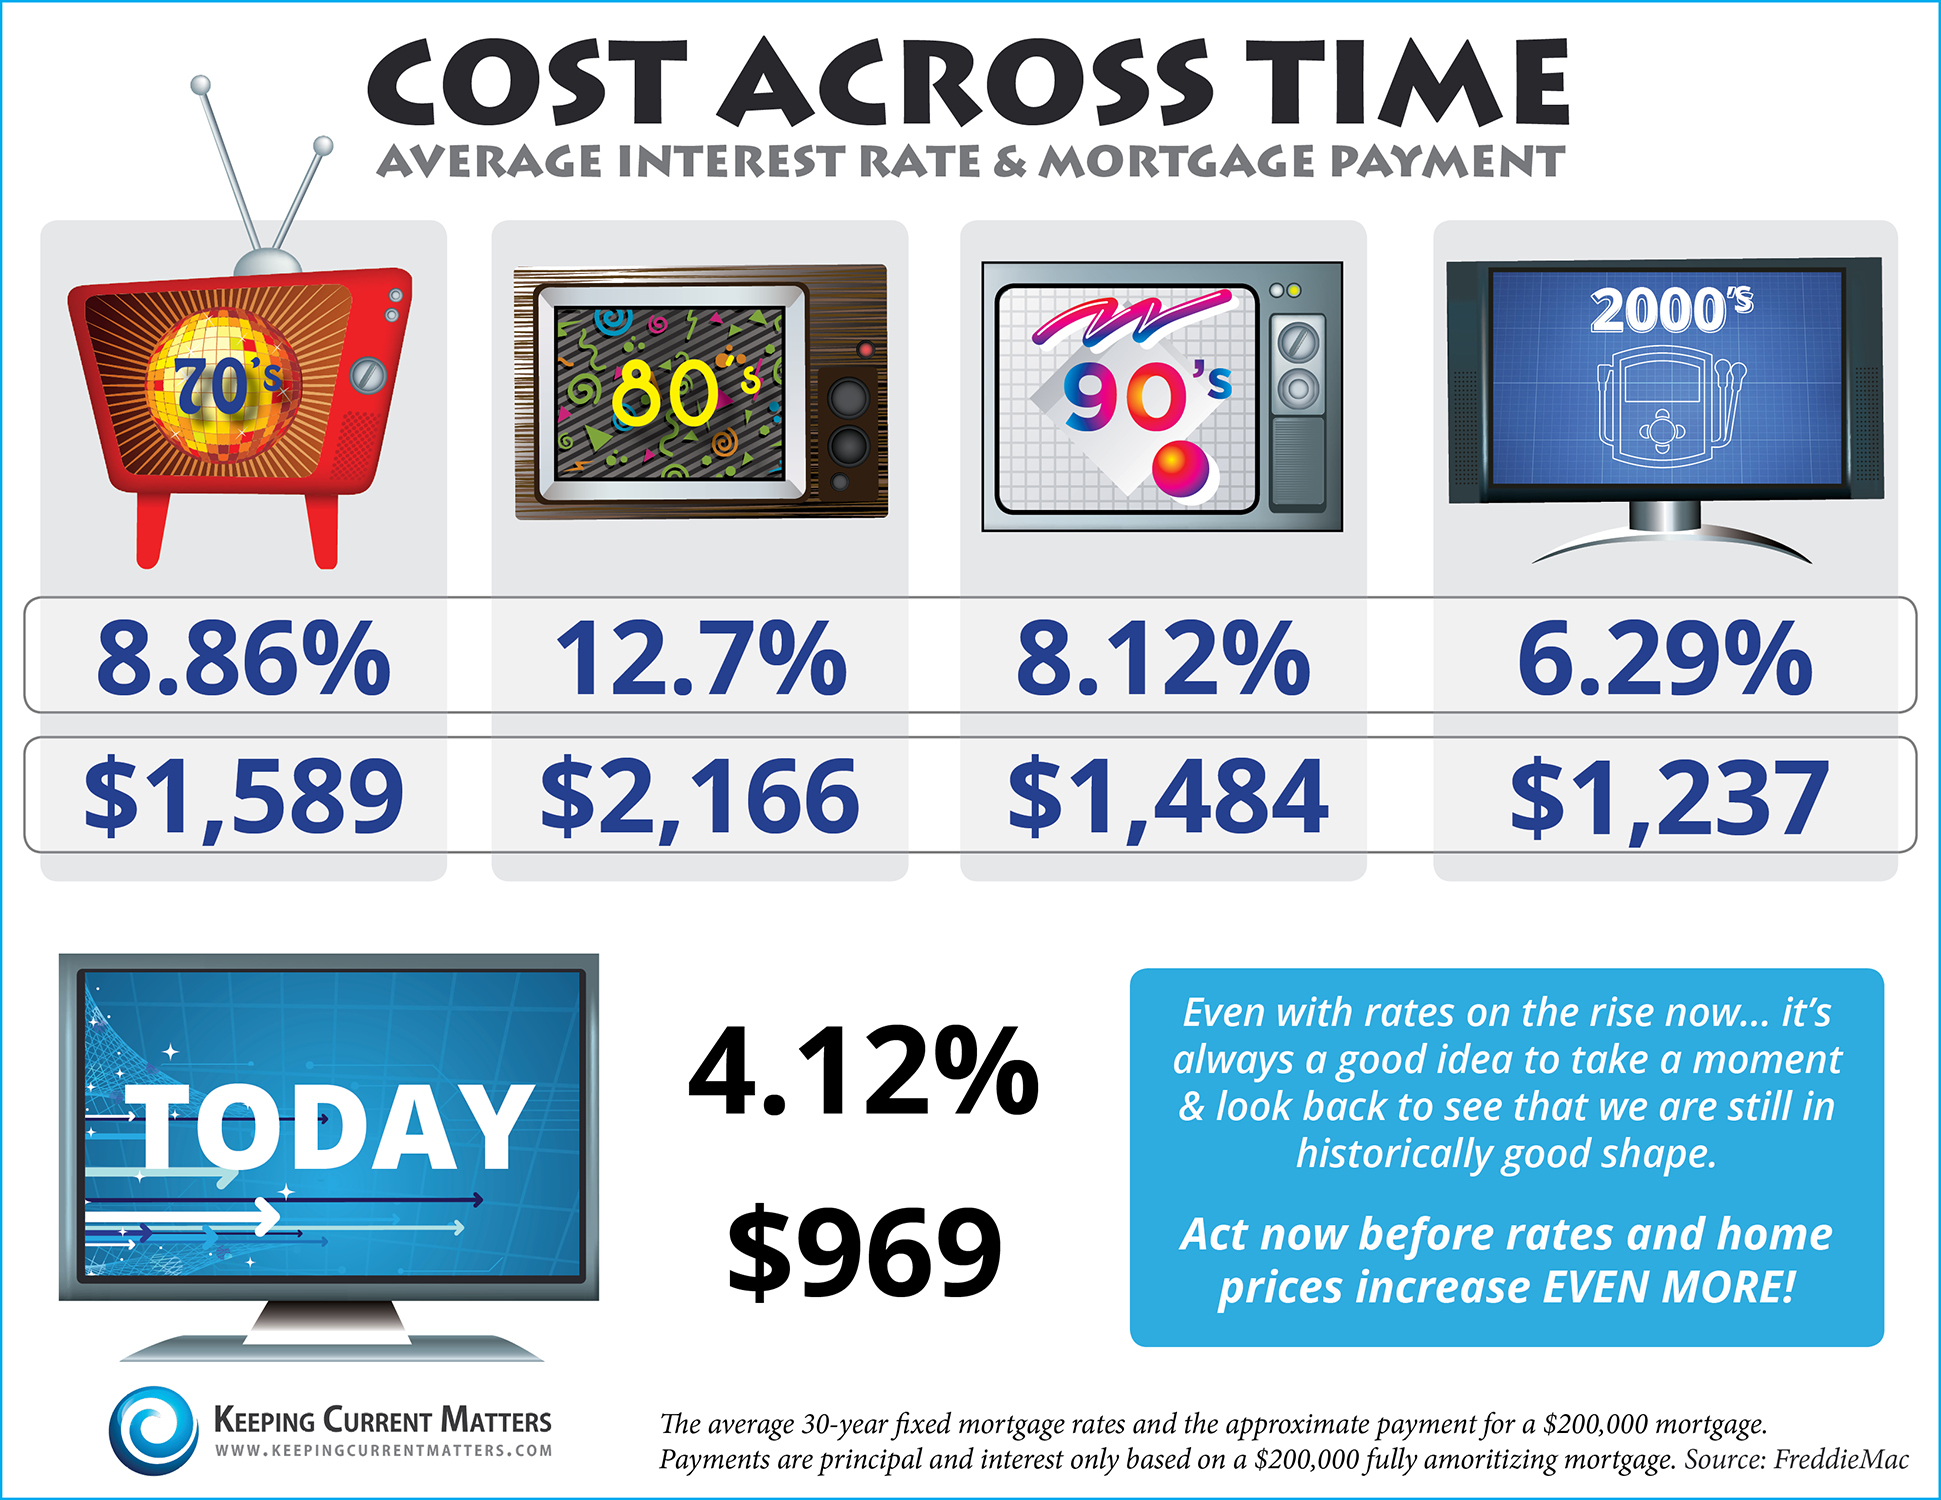 Cost Across Time [INFOGRAPHIC] | The KCM Crew